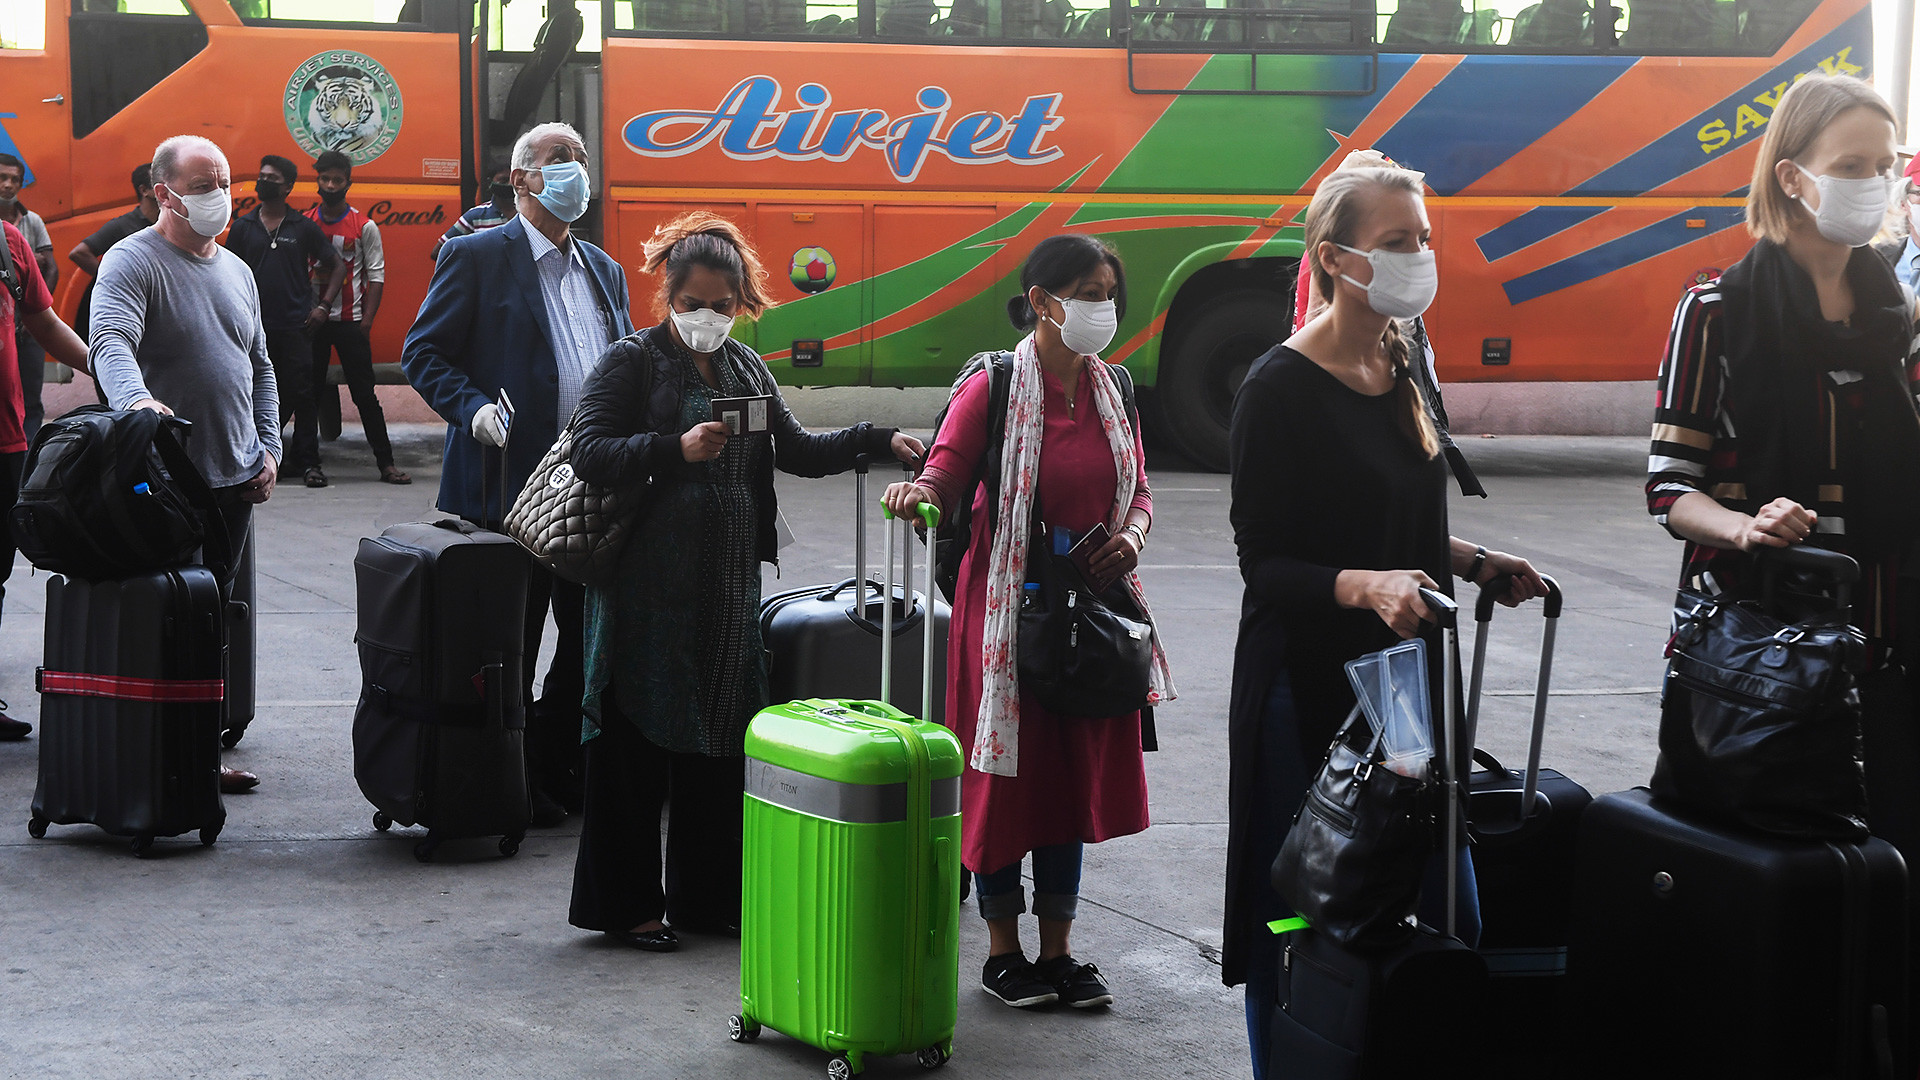 Foreign nationals wearing facemasks line up outside the departure terminal of the Netaji Subhash Chandra Bose International Airport